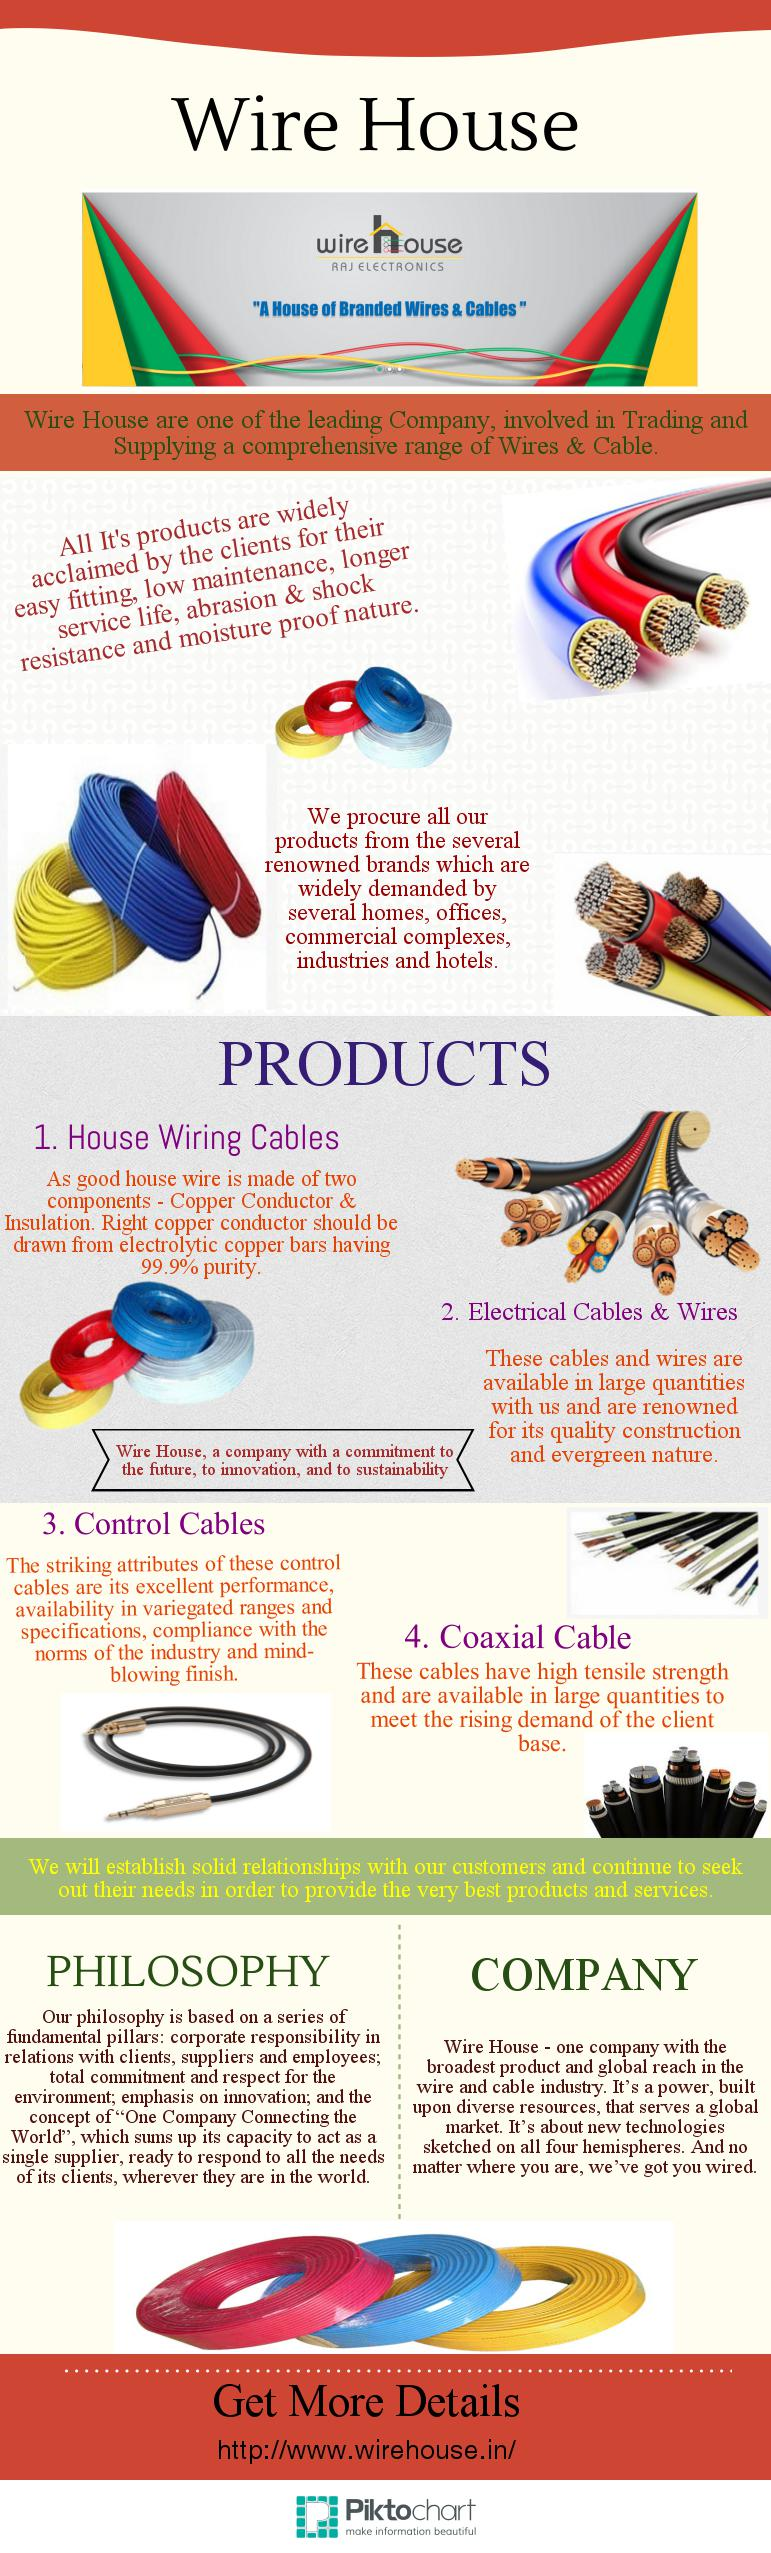 medium resolution of  wirehouse store deals in all types of electrical wires and cables domestic and